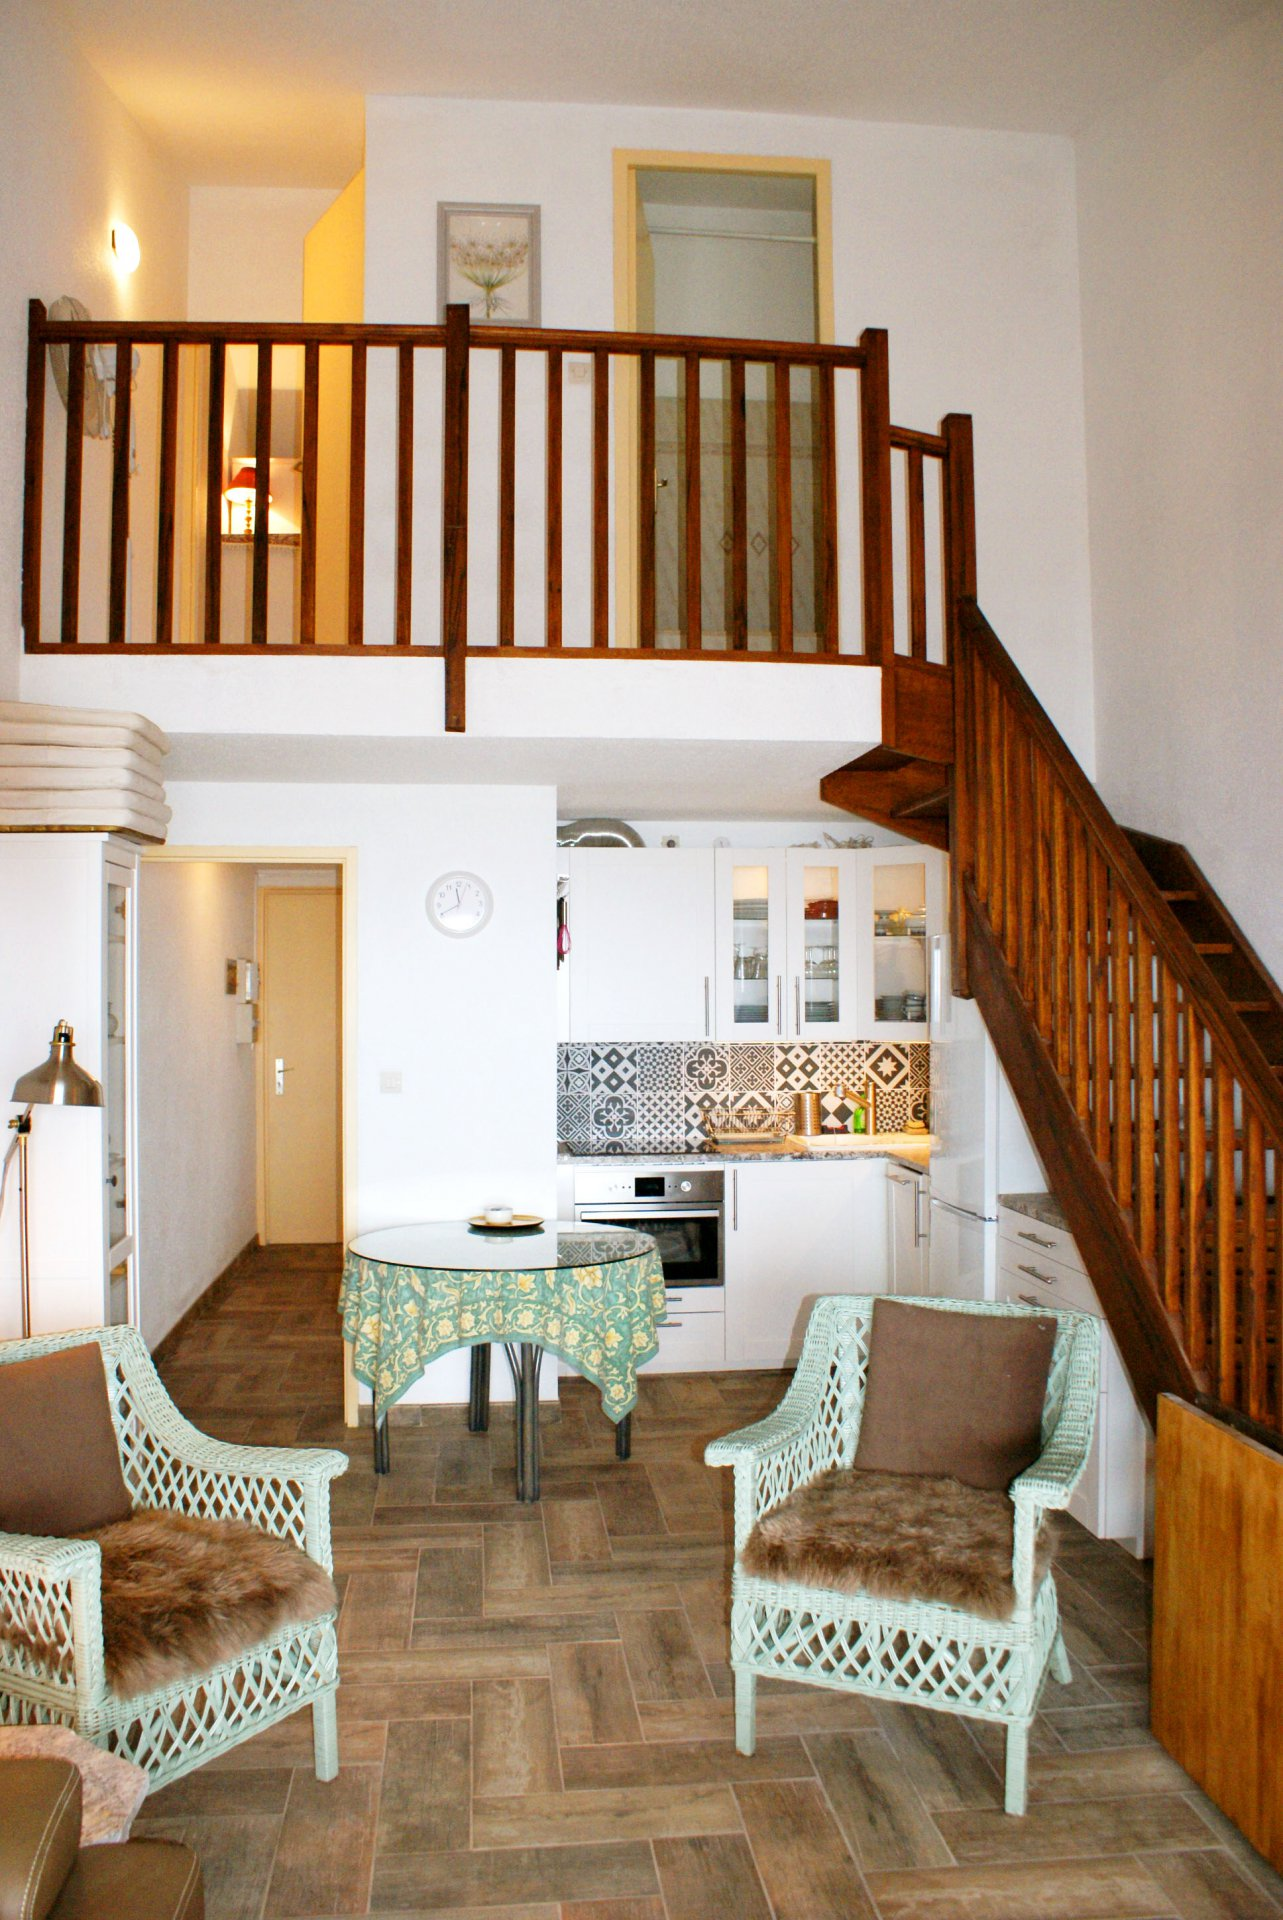 iving room, 2  bed rooms terrasse with sea view open plan kitchen bath room/wc only a few steps from the beach  * BM C11 *